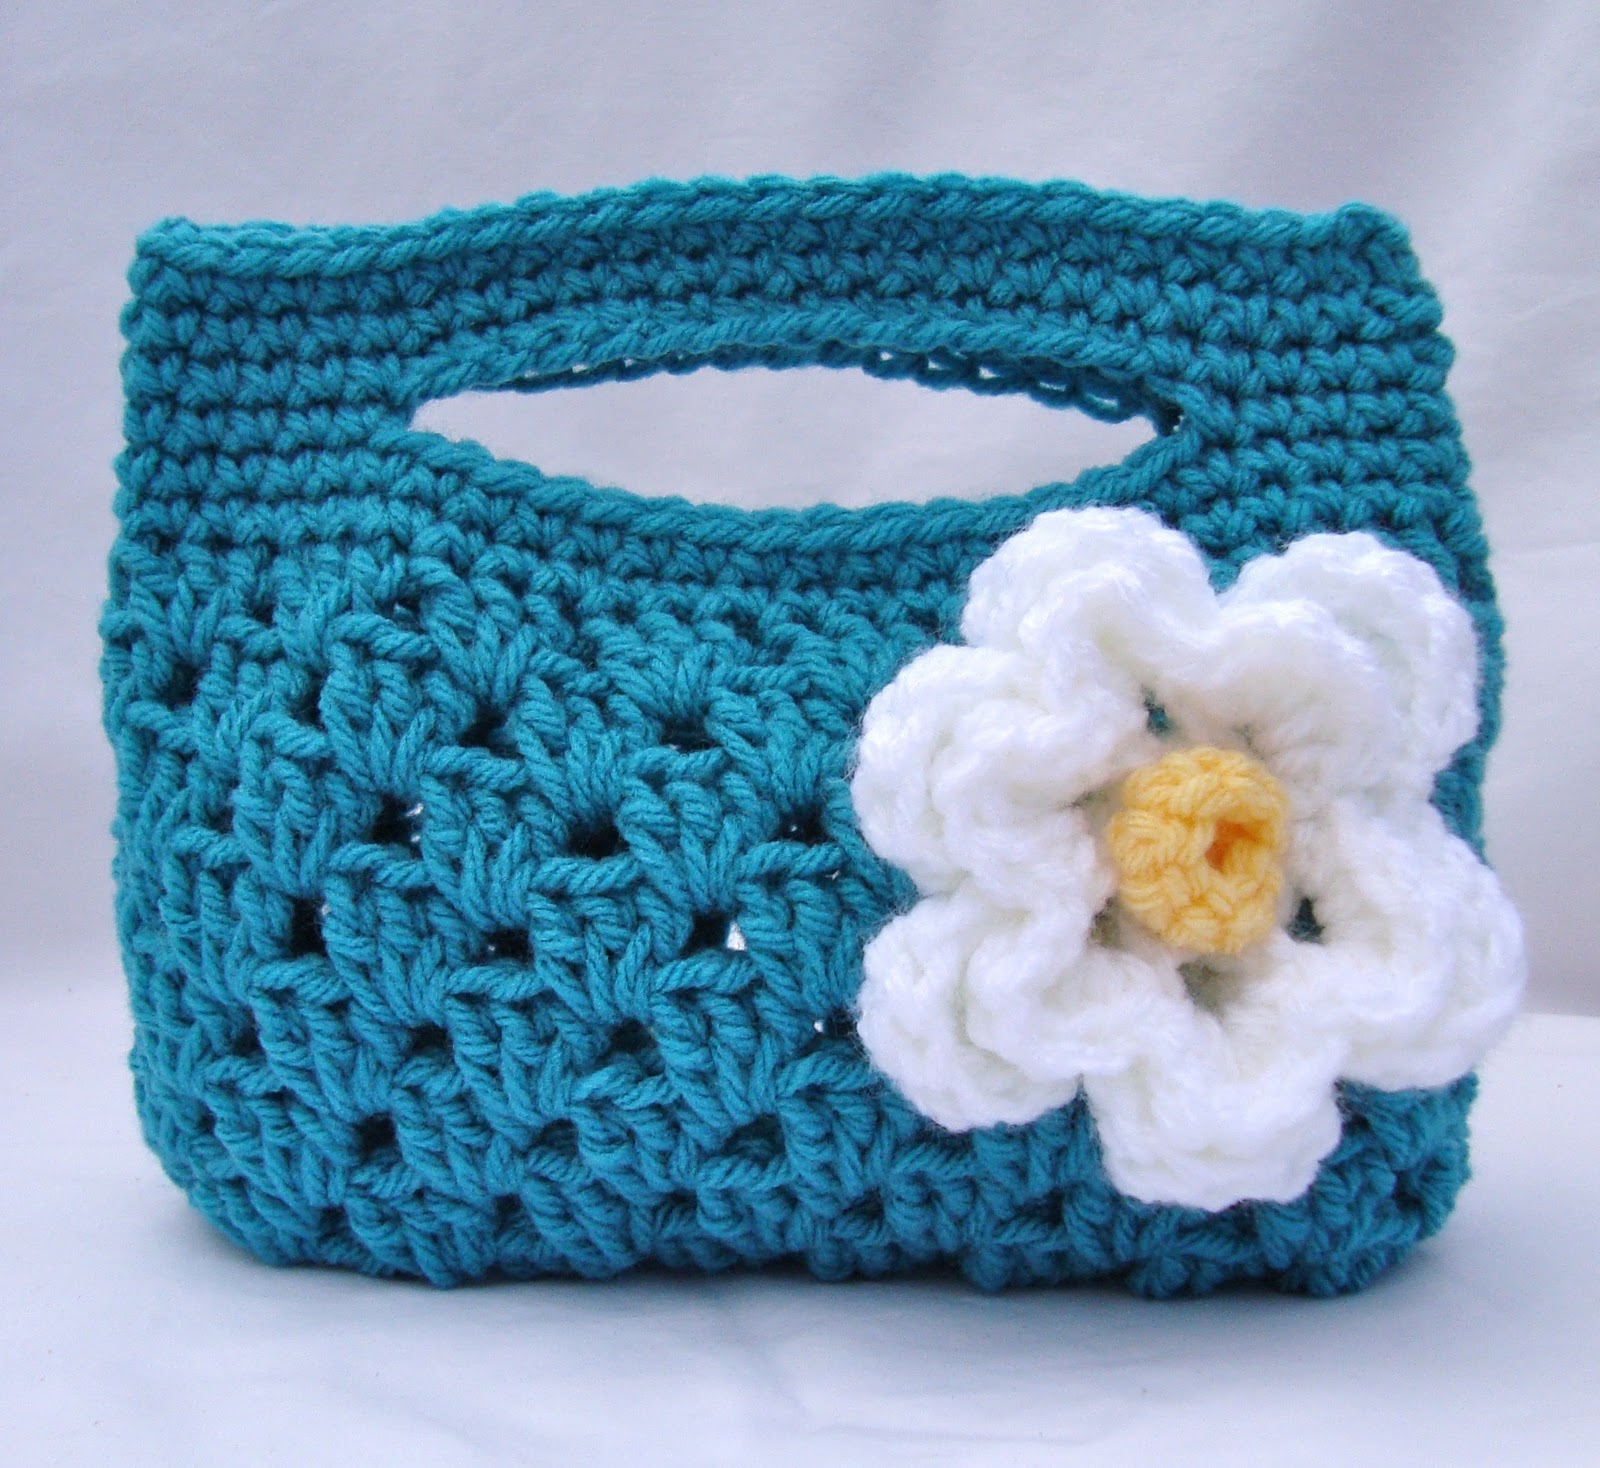 Crochet Bag Tutorial : tangled happy: Granny Stripe Boutique Bag